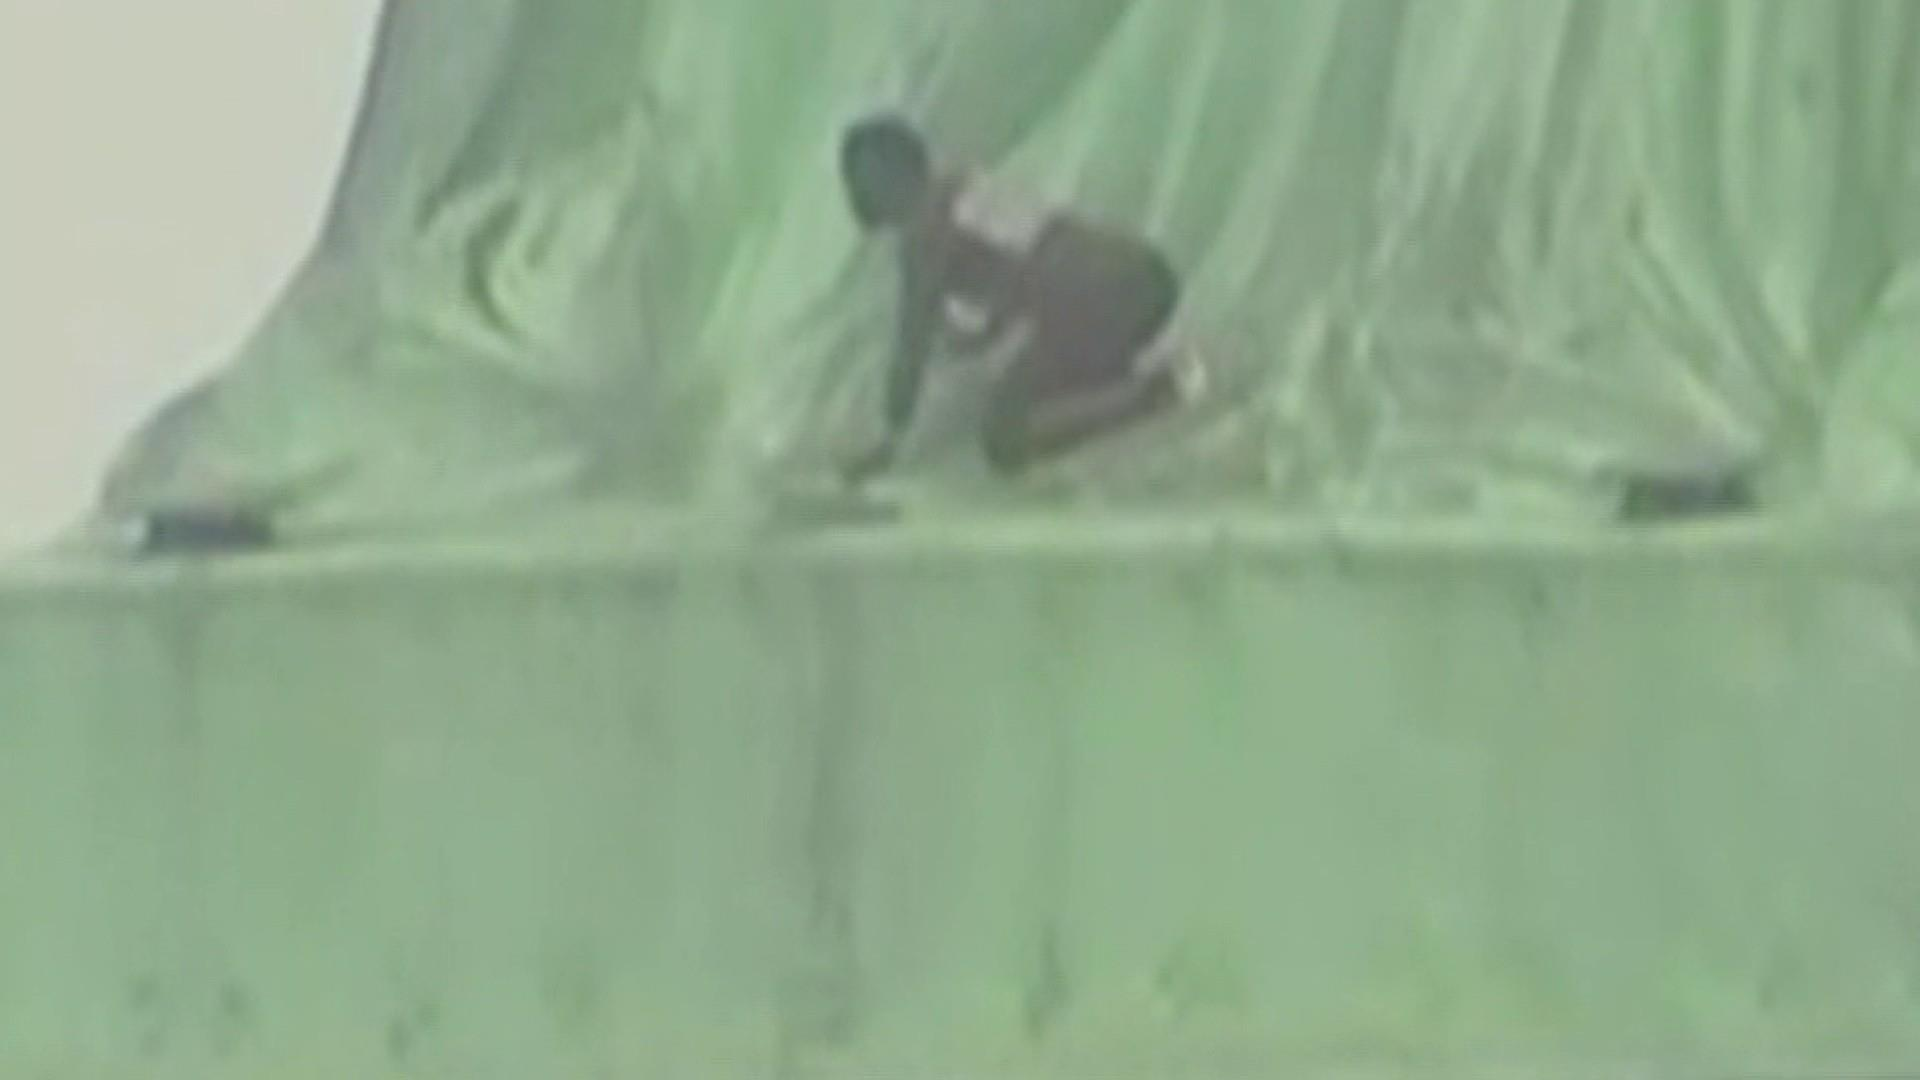 Protester tries to climb Statue of Liberty